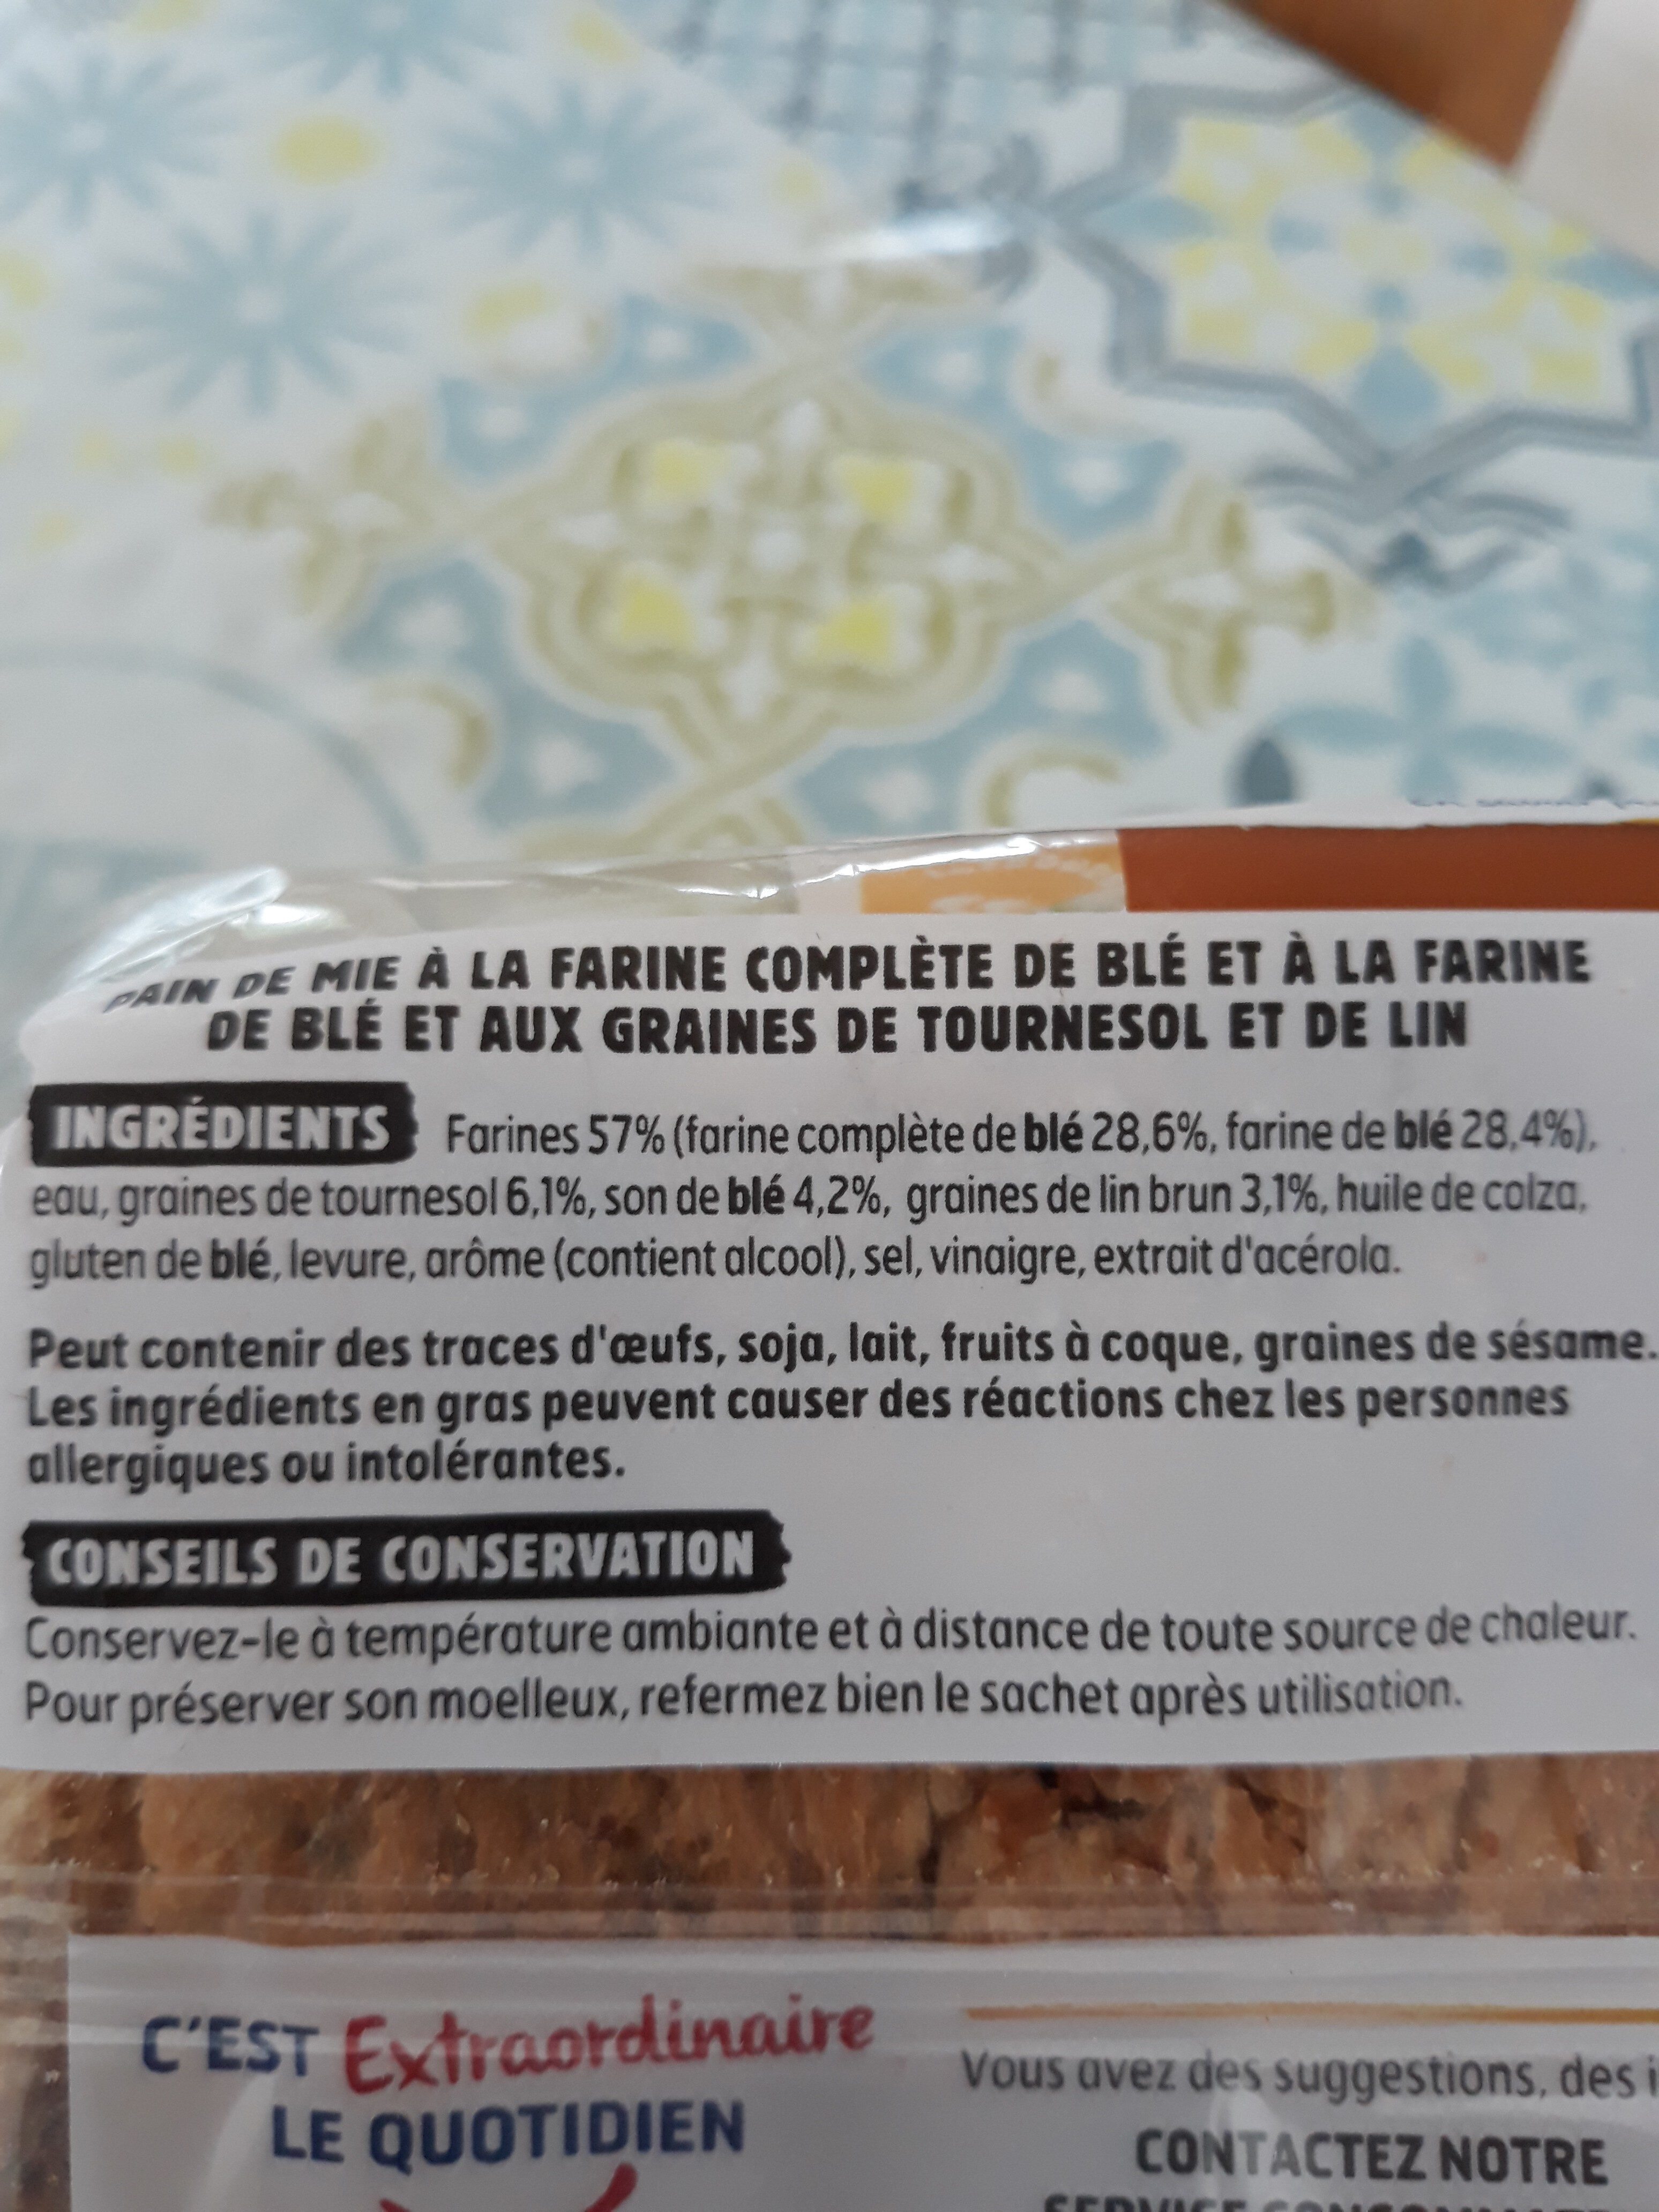 Beau & bon pain de mie complet lin tournesol - Ingredienti - fr